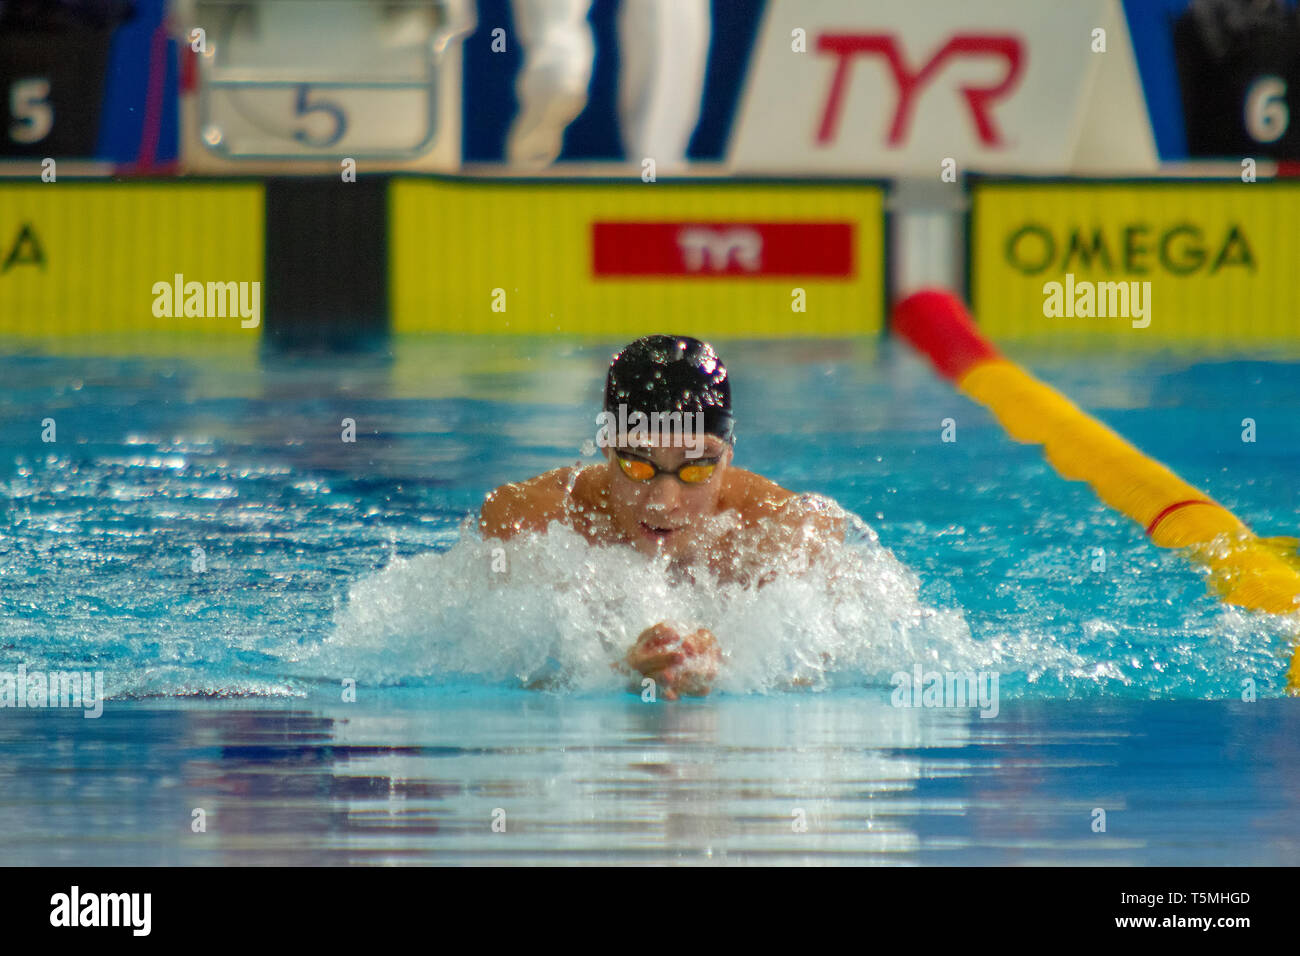 Edward Baxter (Loughborough National Centre) in action during the men's transition 100 metres breaststroke final, during Day 1 of the 2019 British Swi - Stock Image